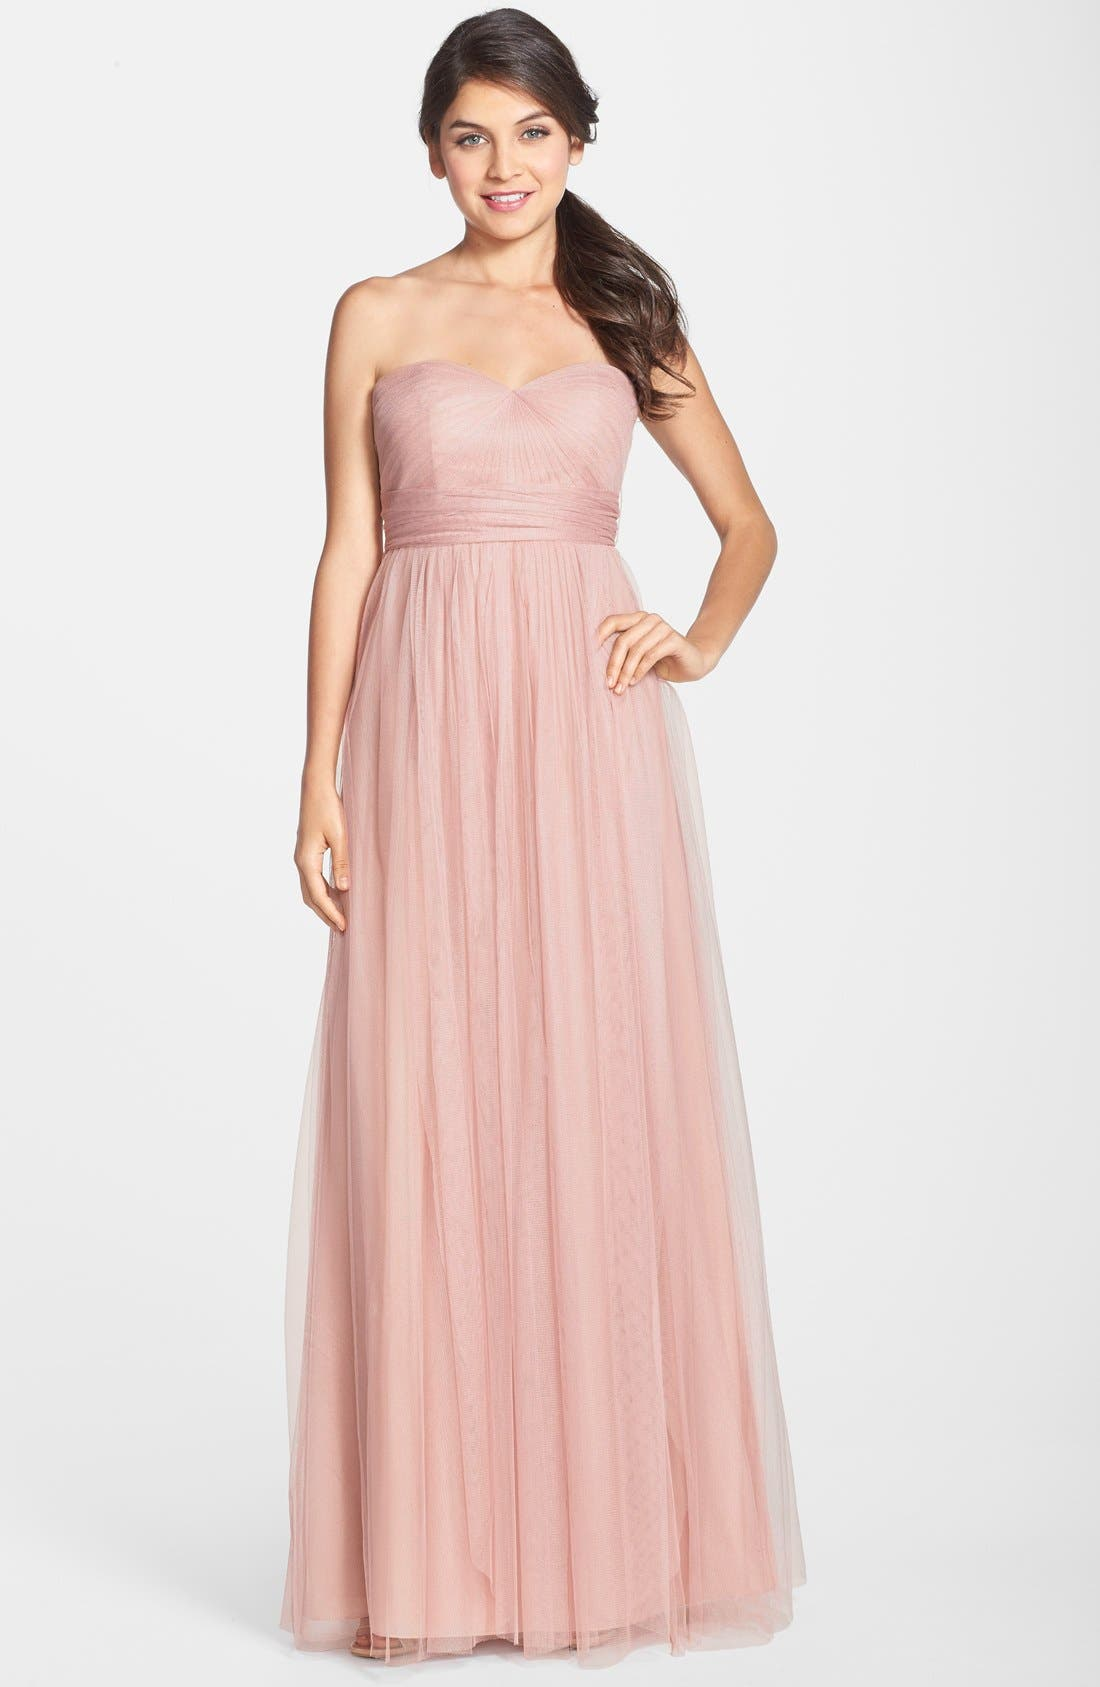 Annabelle Convertible Tulle Column Dress,                             Main thumbnail 18, color,